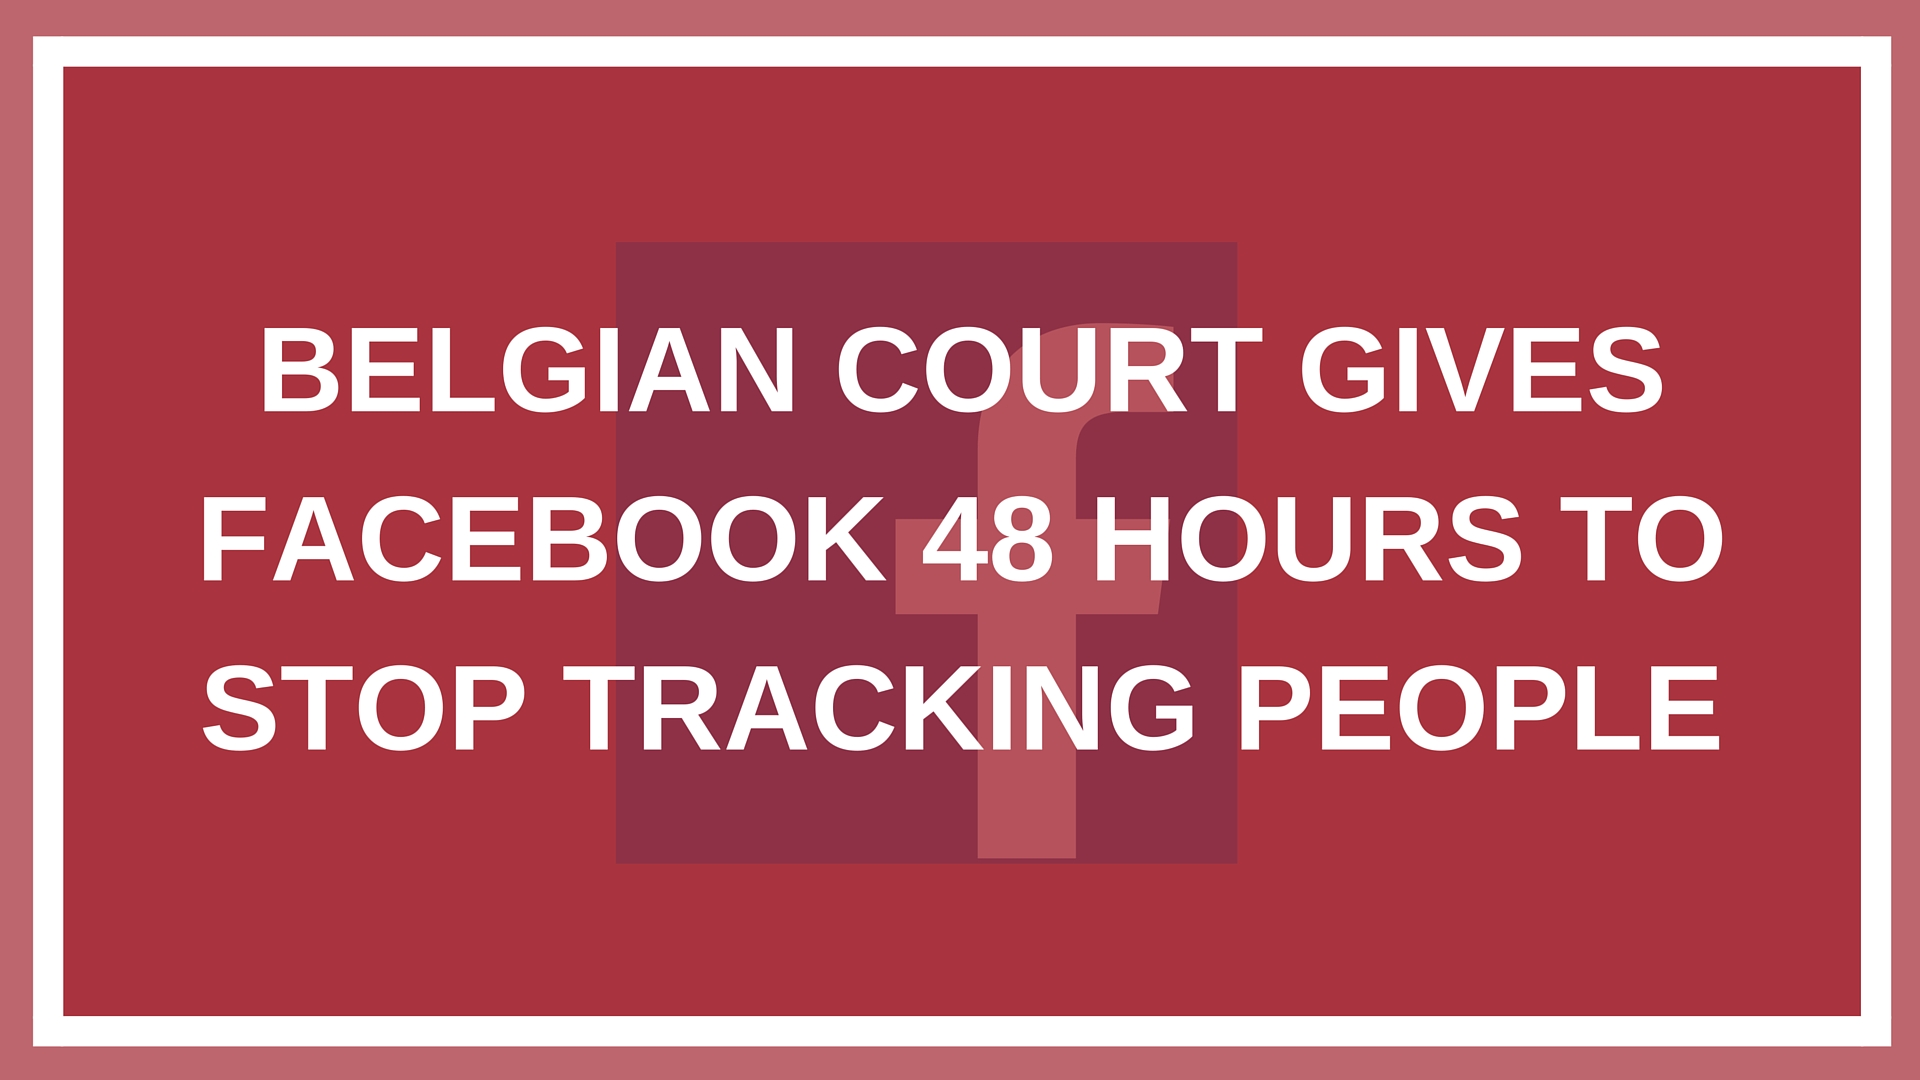 how to stop someone from tracking your iphone belgian court gives 48 hours to stop tracking 2494